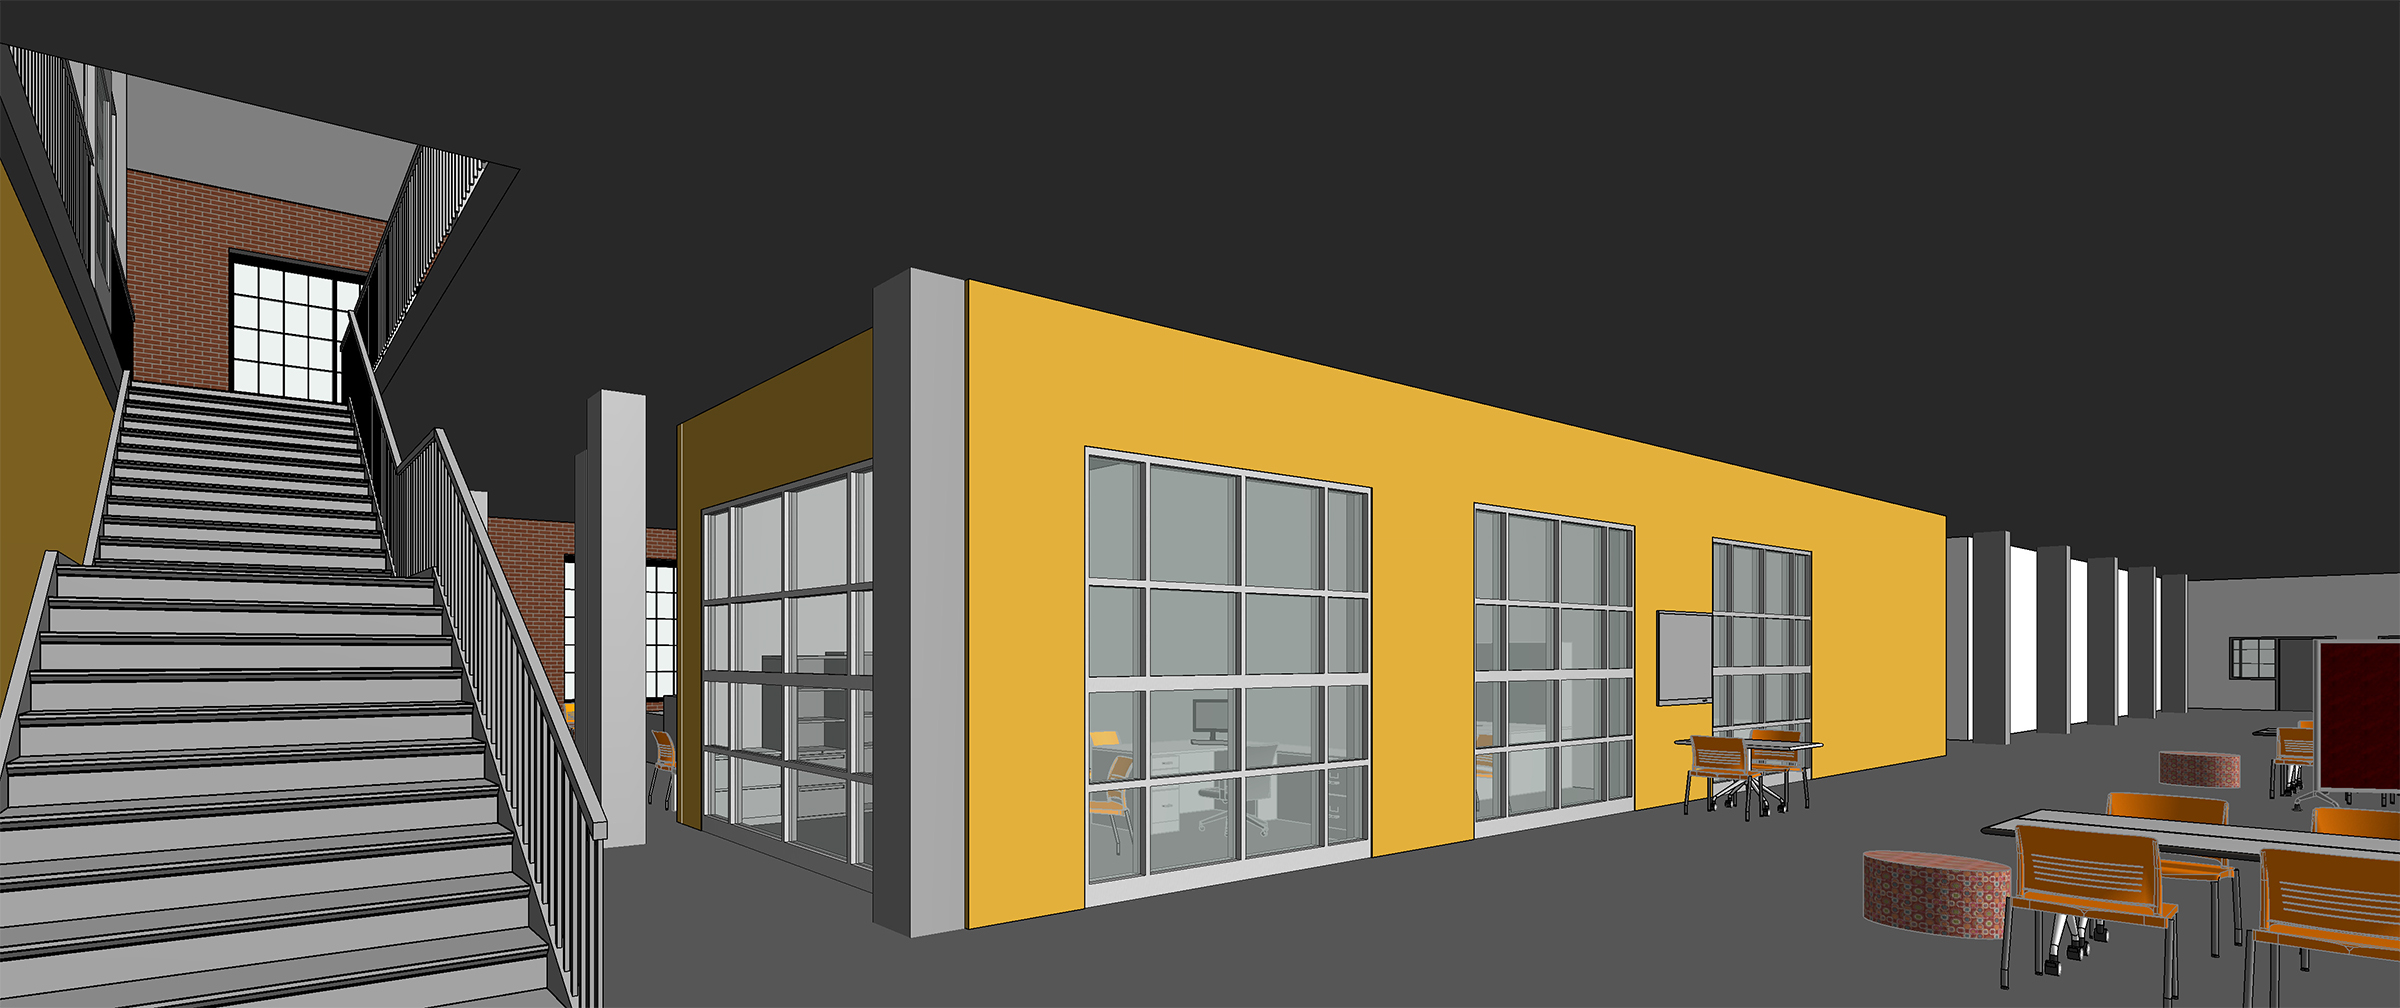 Purdue Polytechnic High School Moving Forward In Indy